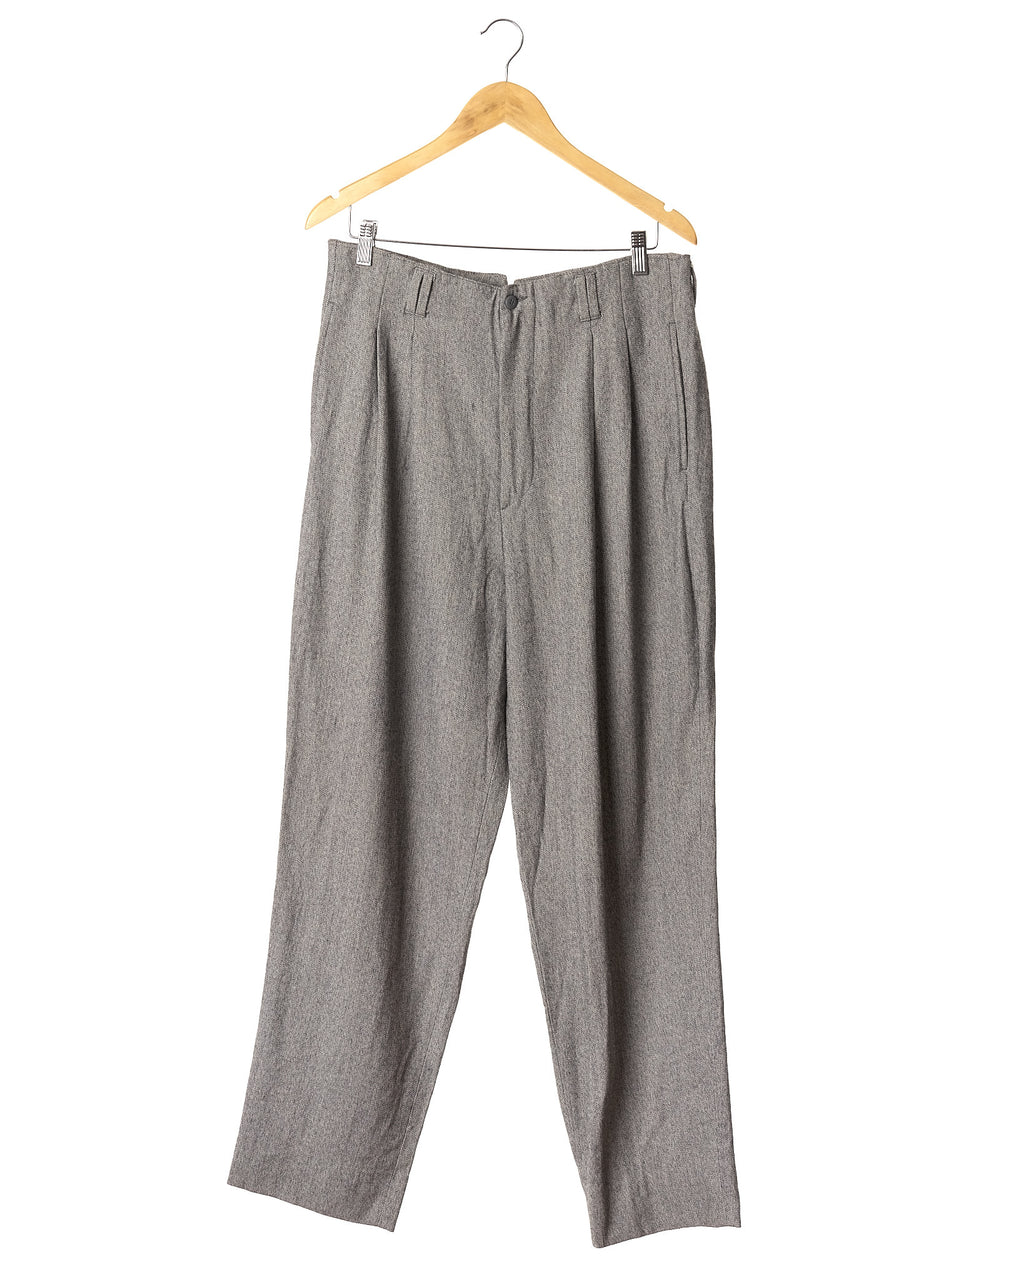 Light Speckled Grey Pleated Vintage Wool Trousers